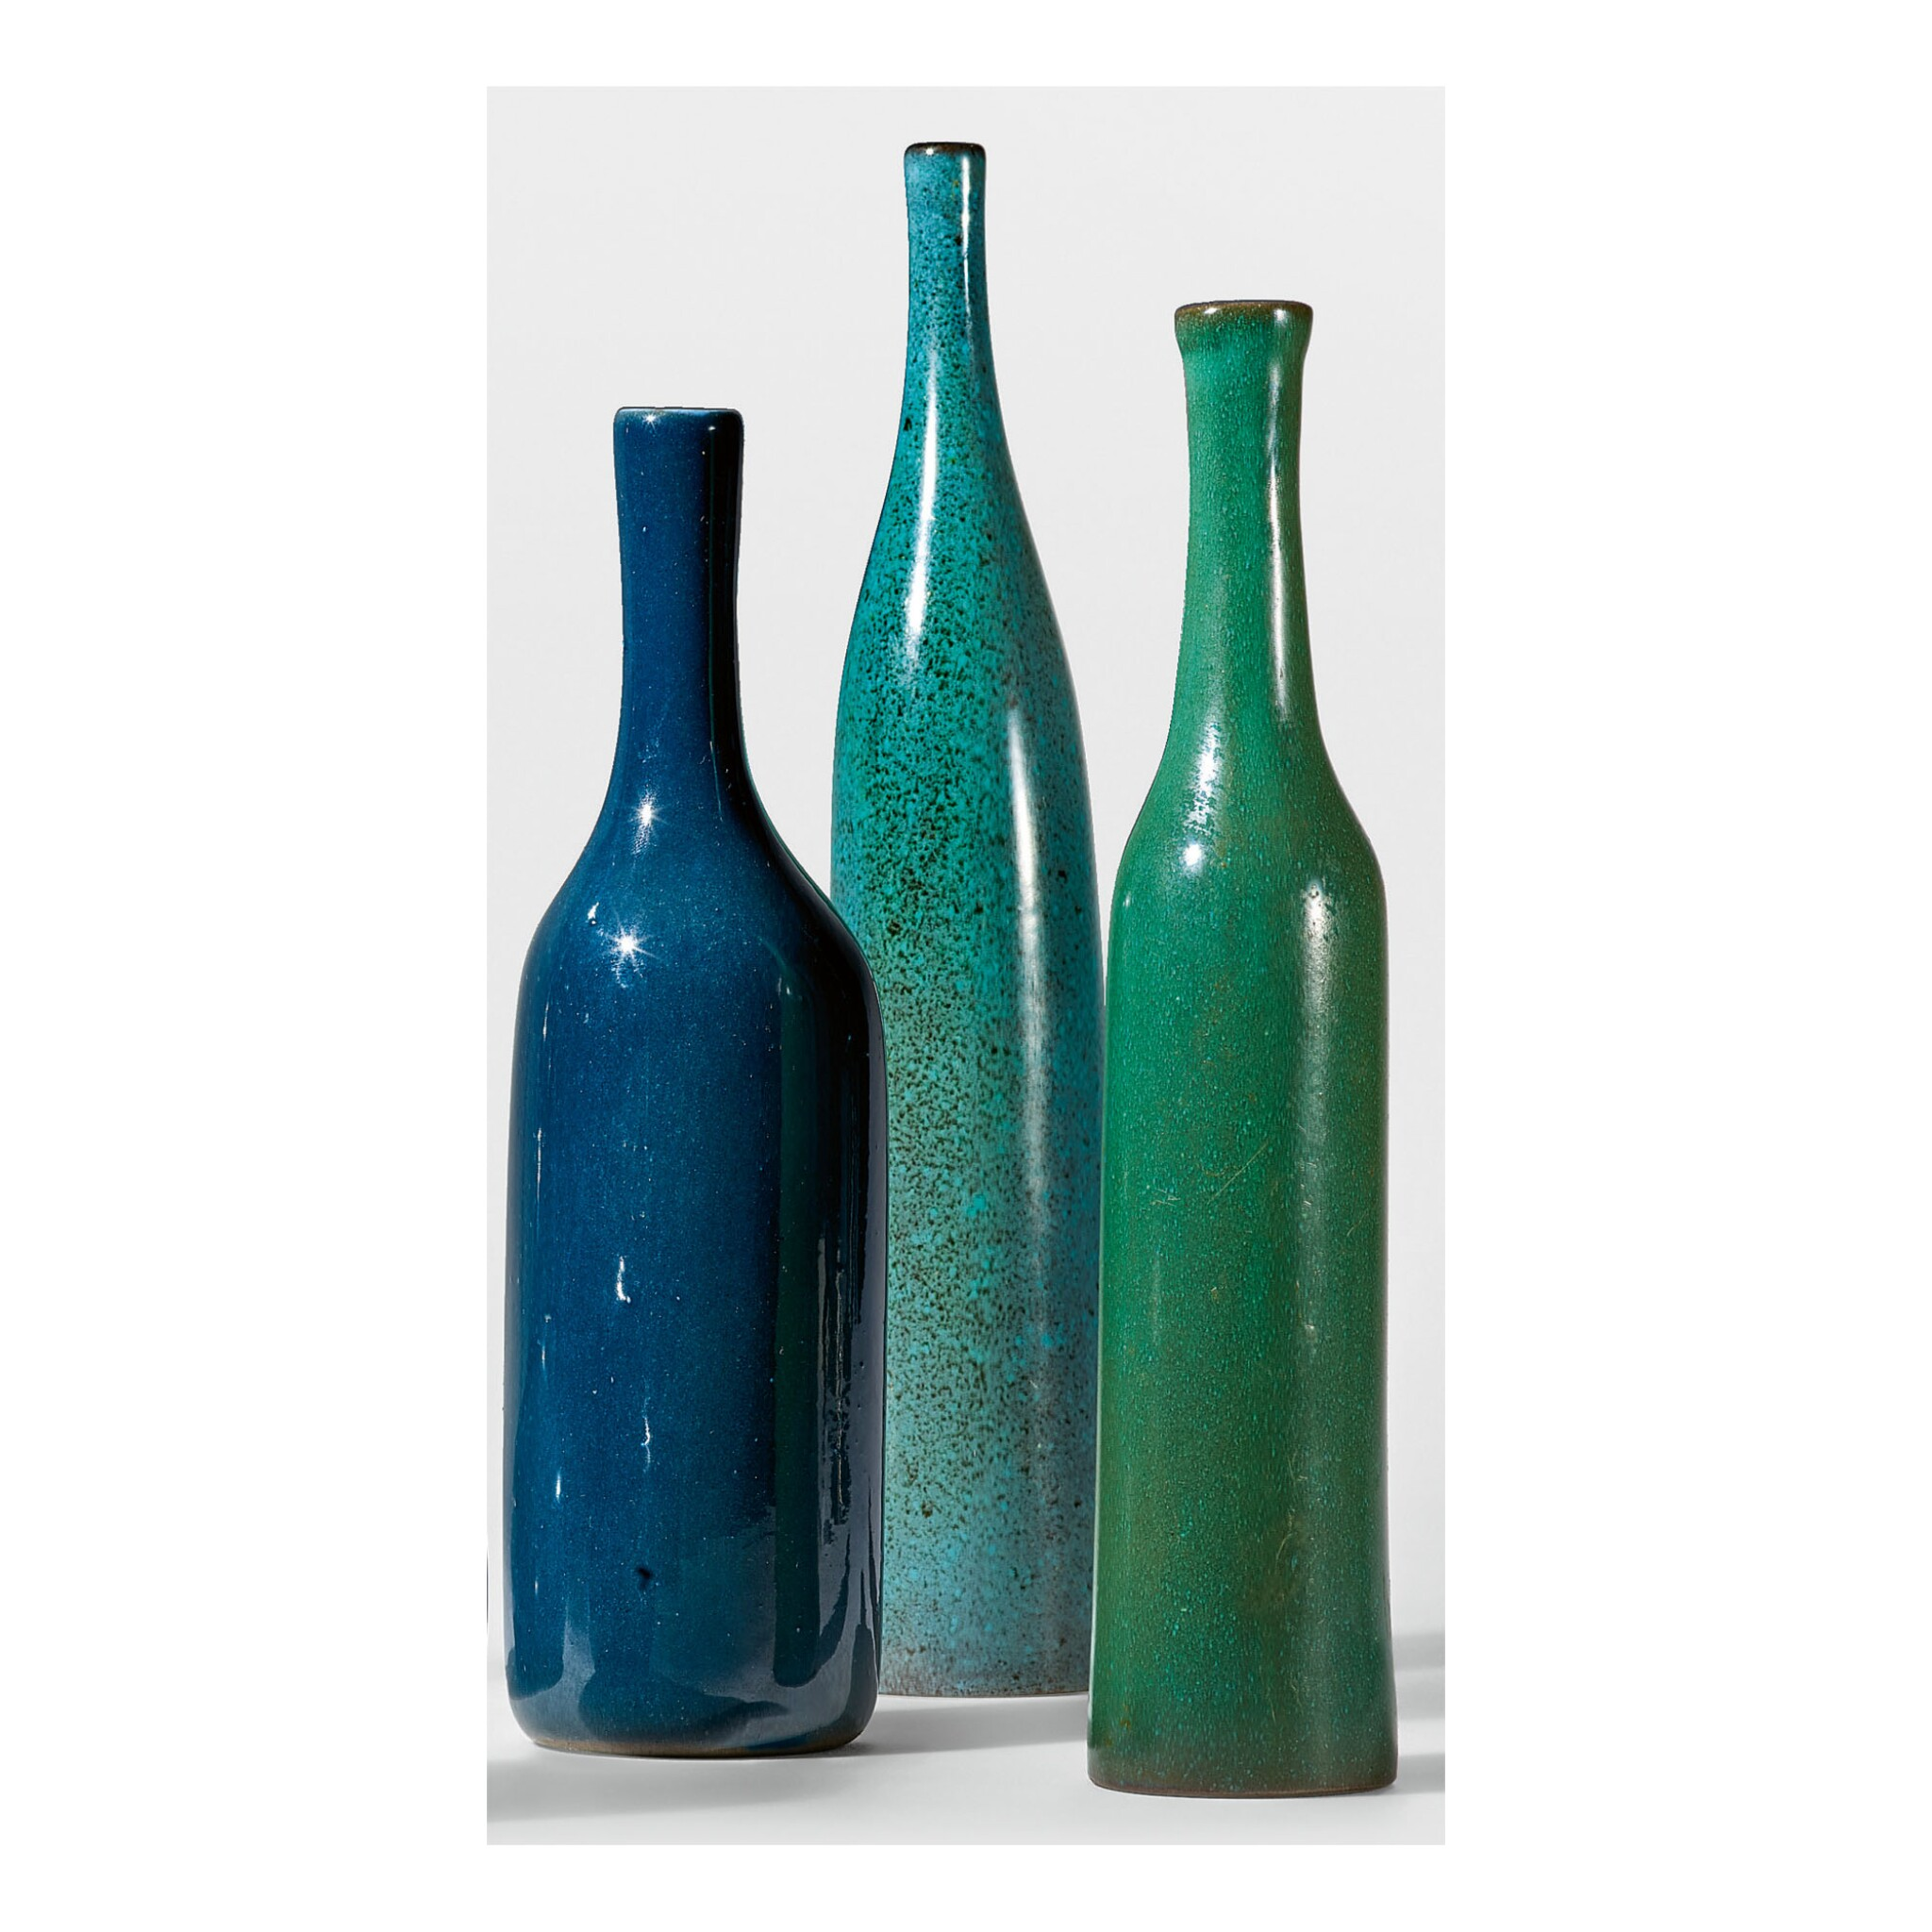 """View full screen - View 1 of Lot 221. JACQUES RUELLAND AND DANI RUELLAND 